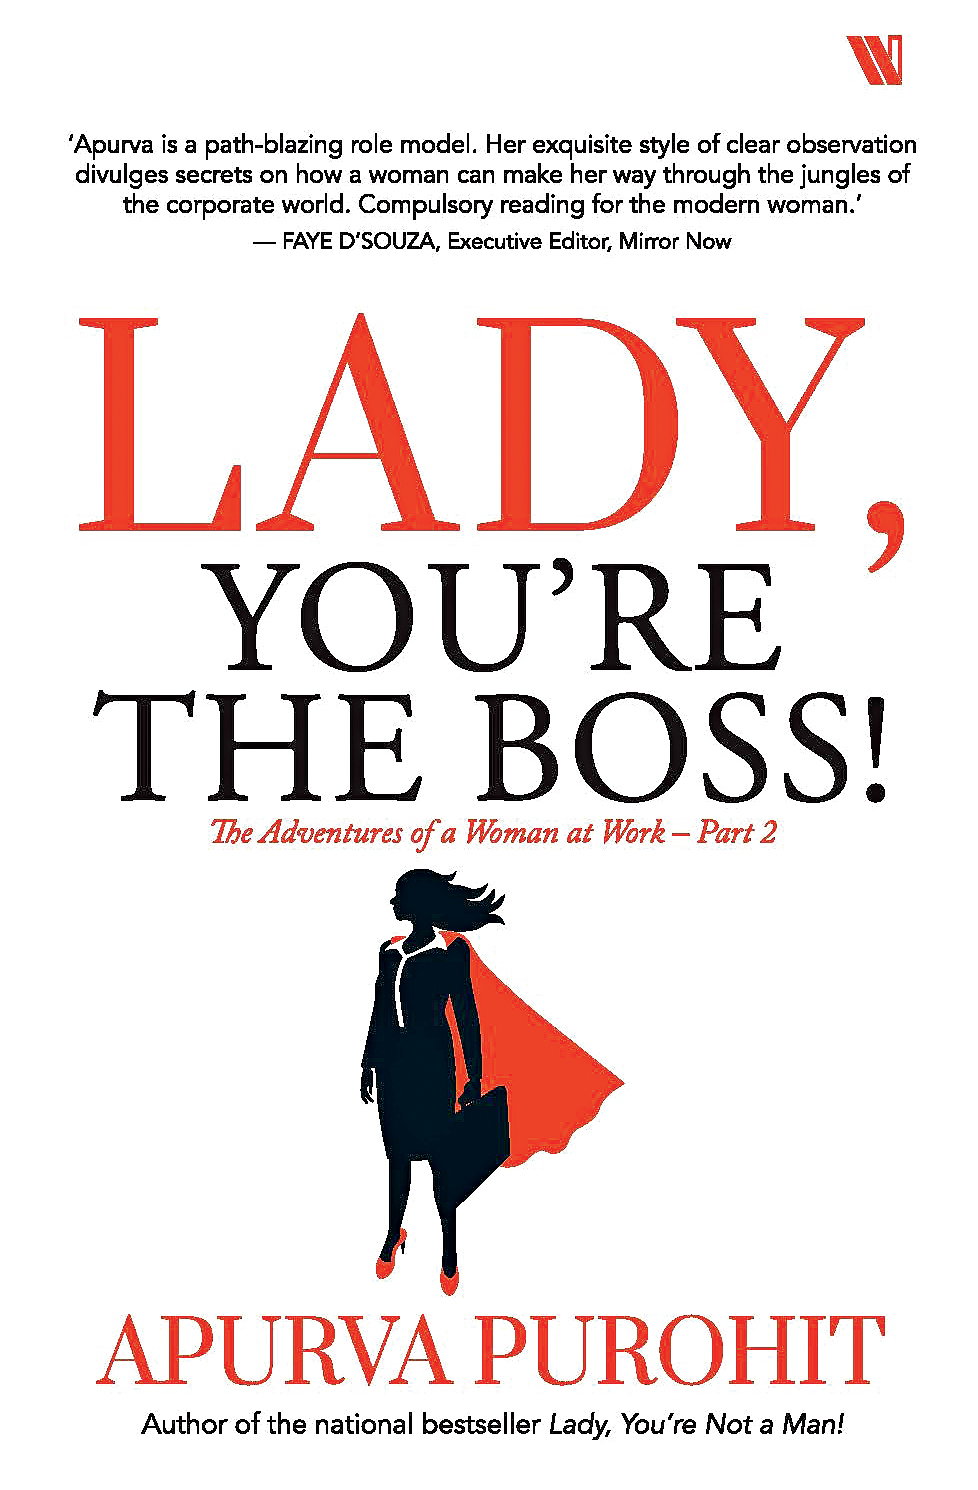 Lady, You're The Boss; Apurva Purohit; Westland; Rs 299